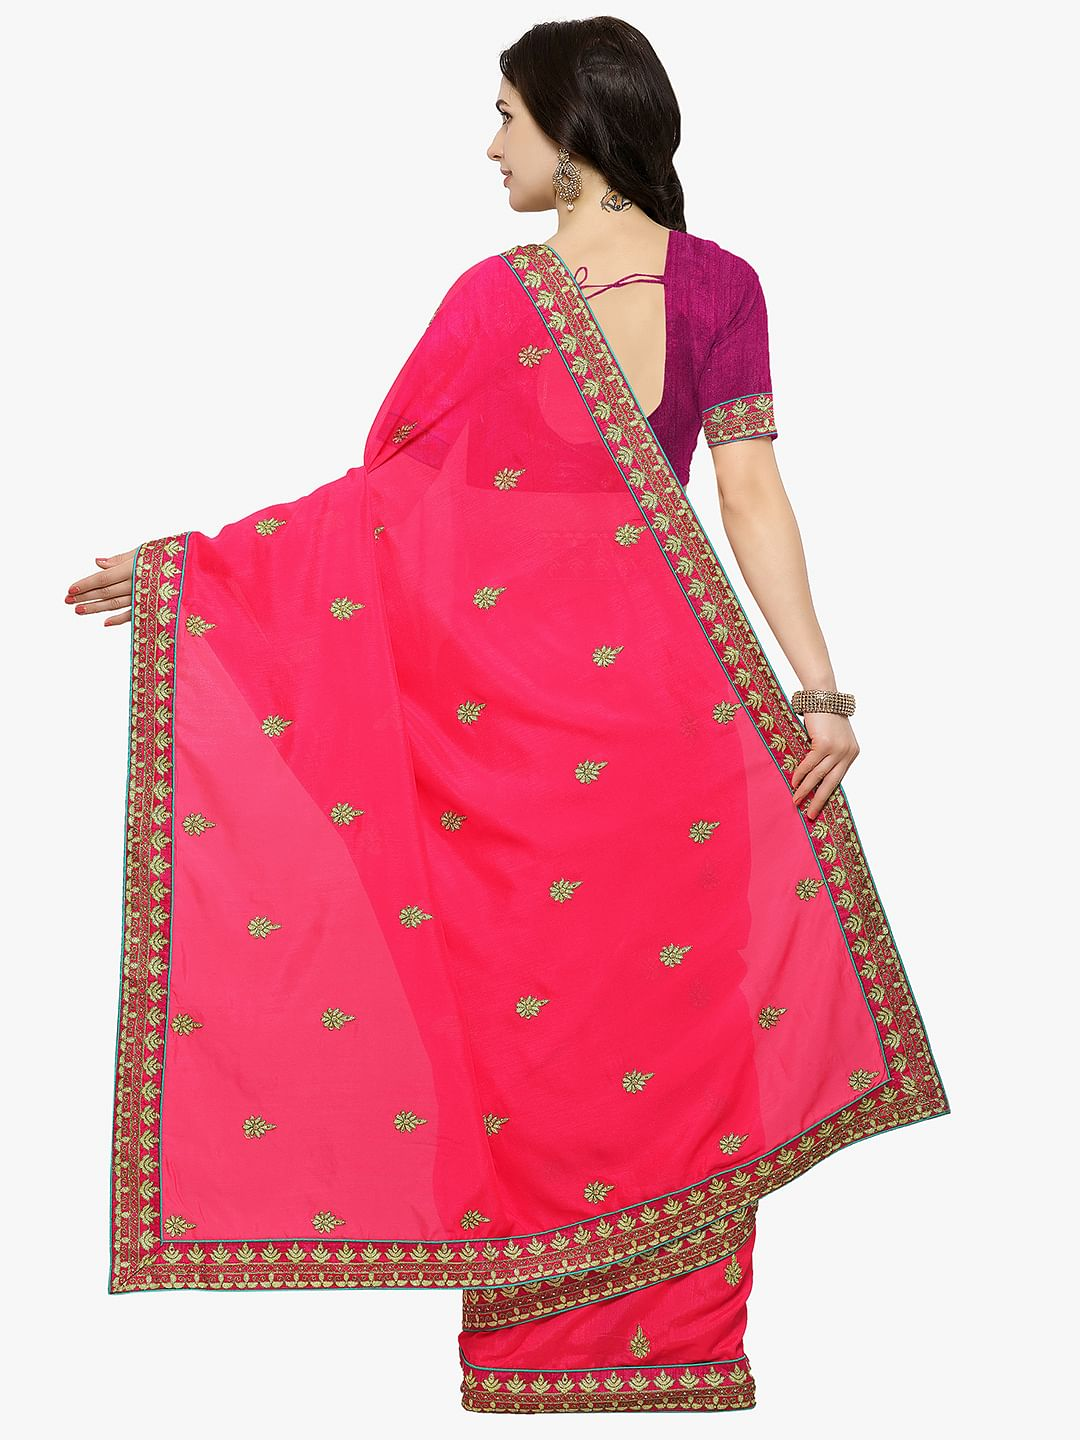 Hot Pink Colored Embroidered Partywear Silk Saree